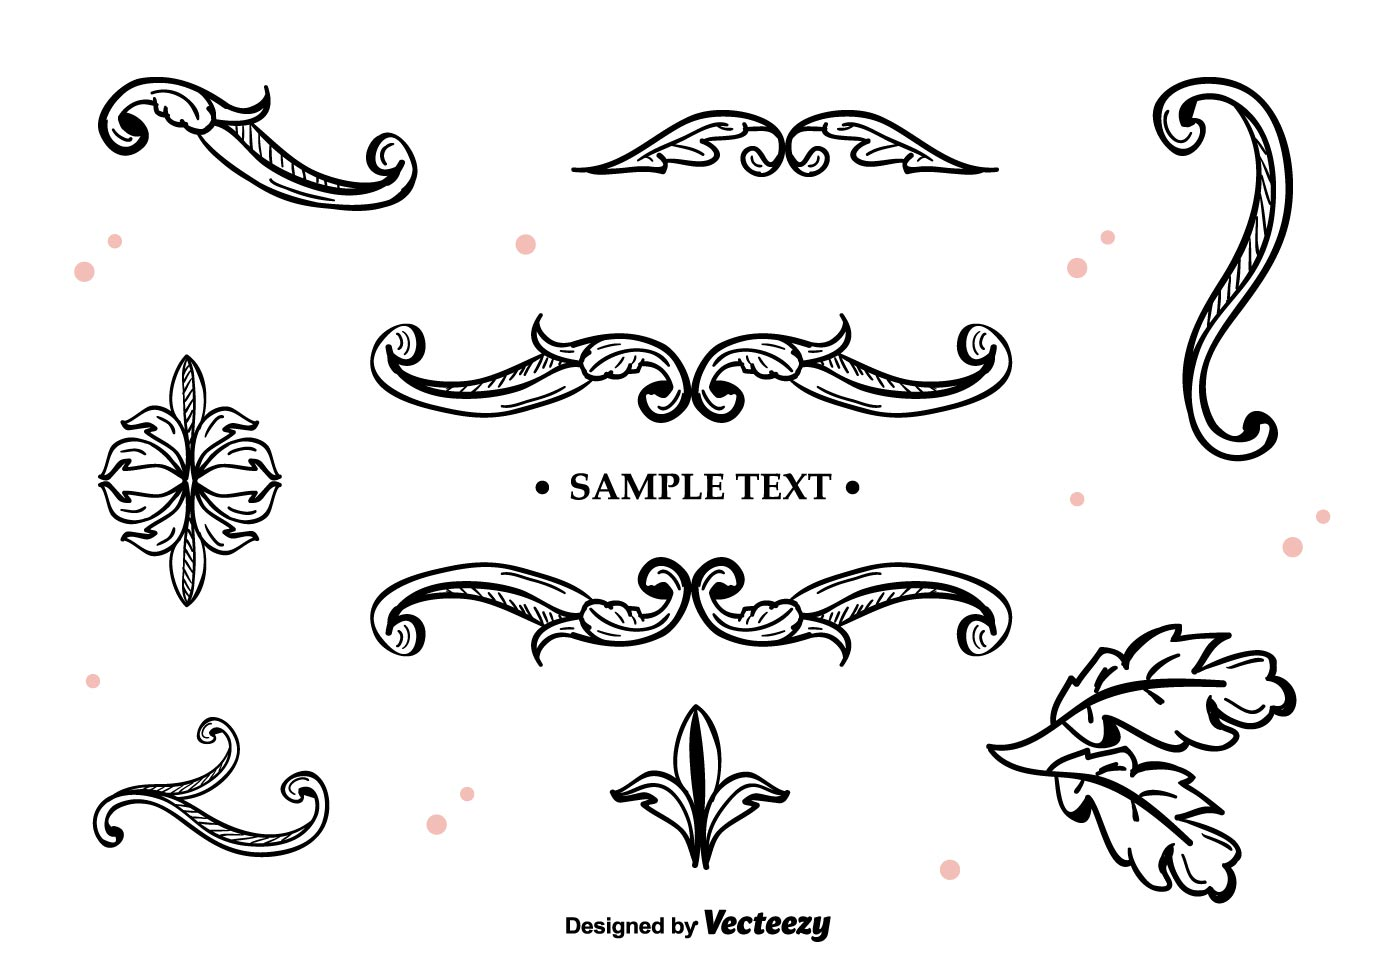 Ornament Free Vector Art 7205 Free Downloads